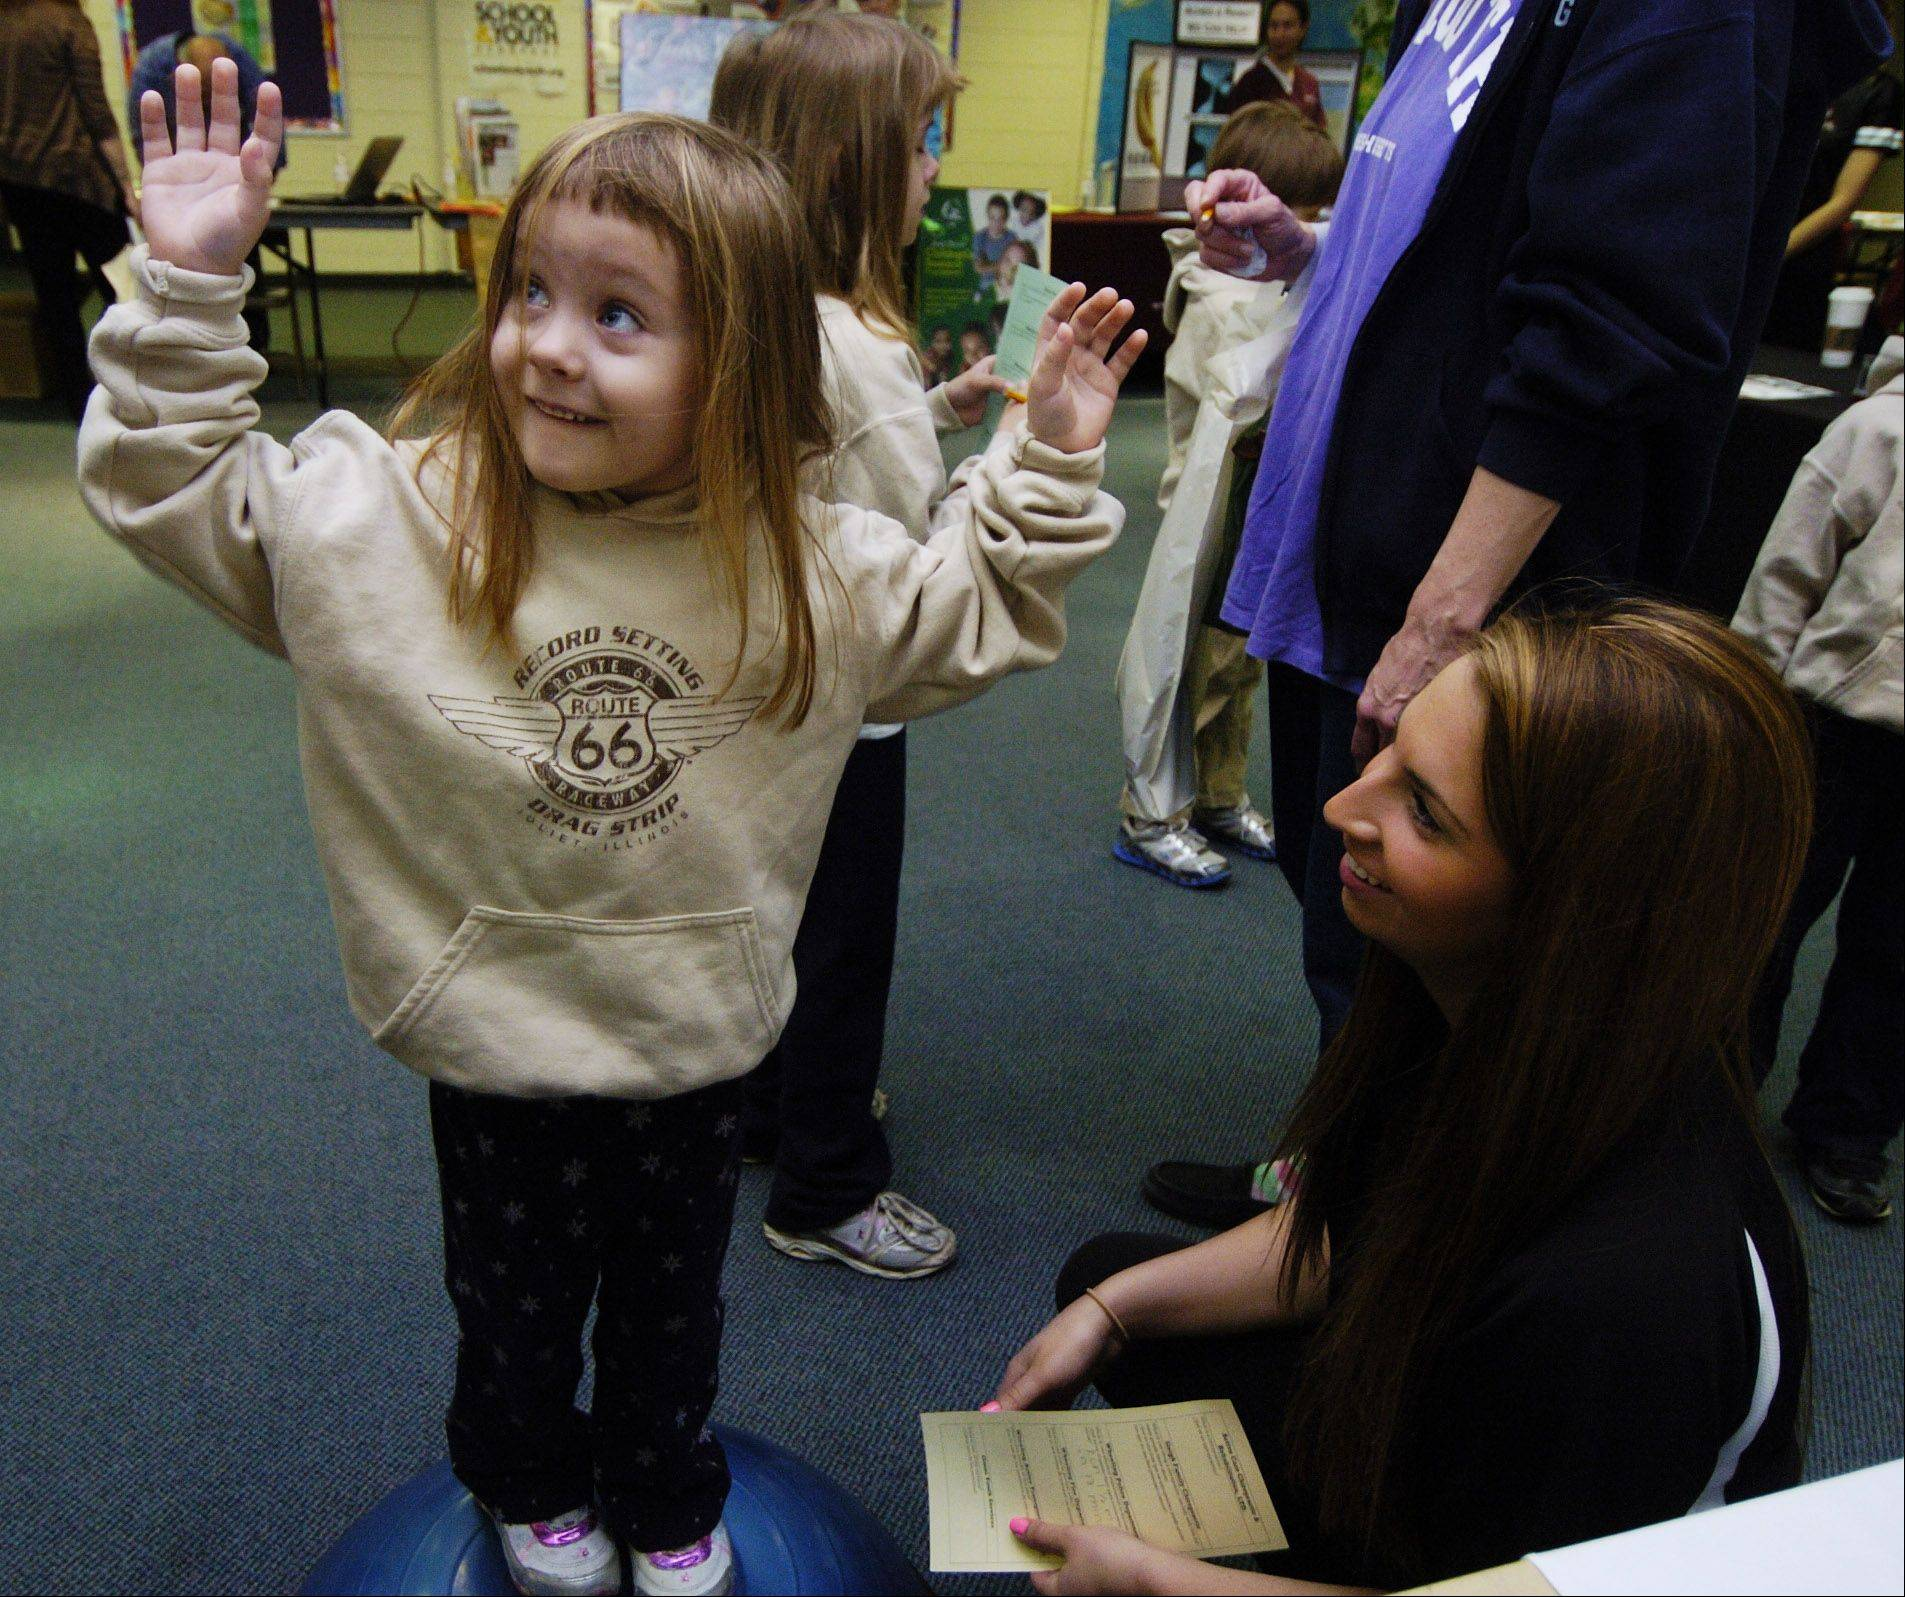 Natalie Edstrom, 5, of Wheeling learns about balance from the Wheeling Park District staff including Jacqueline McCraren during the Wheeling Township and Elementary District 21 wellness fair at Jack London Middle School in Wheeling Saturday.